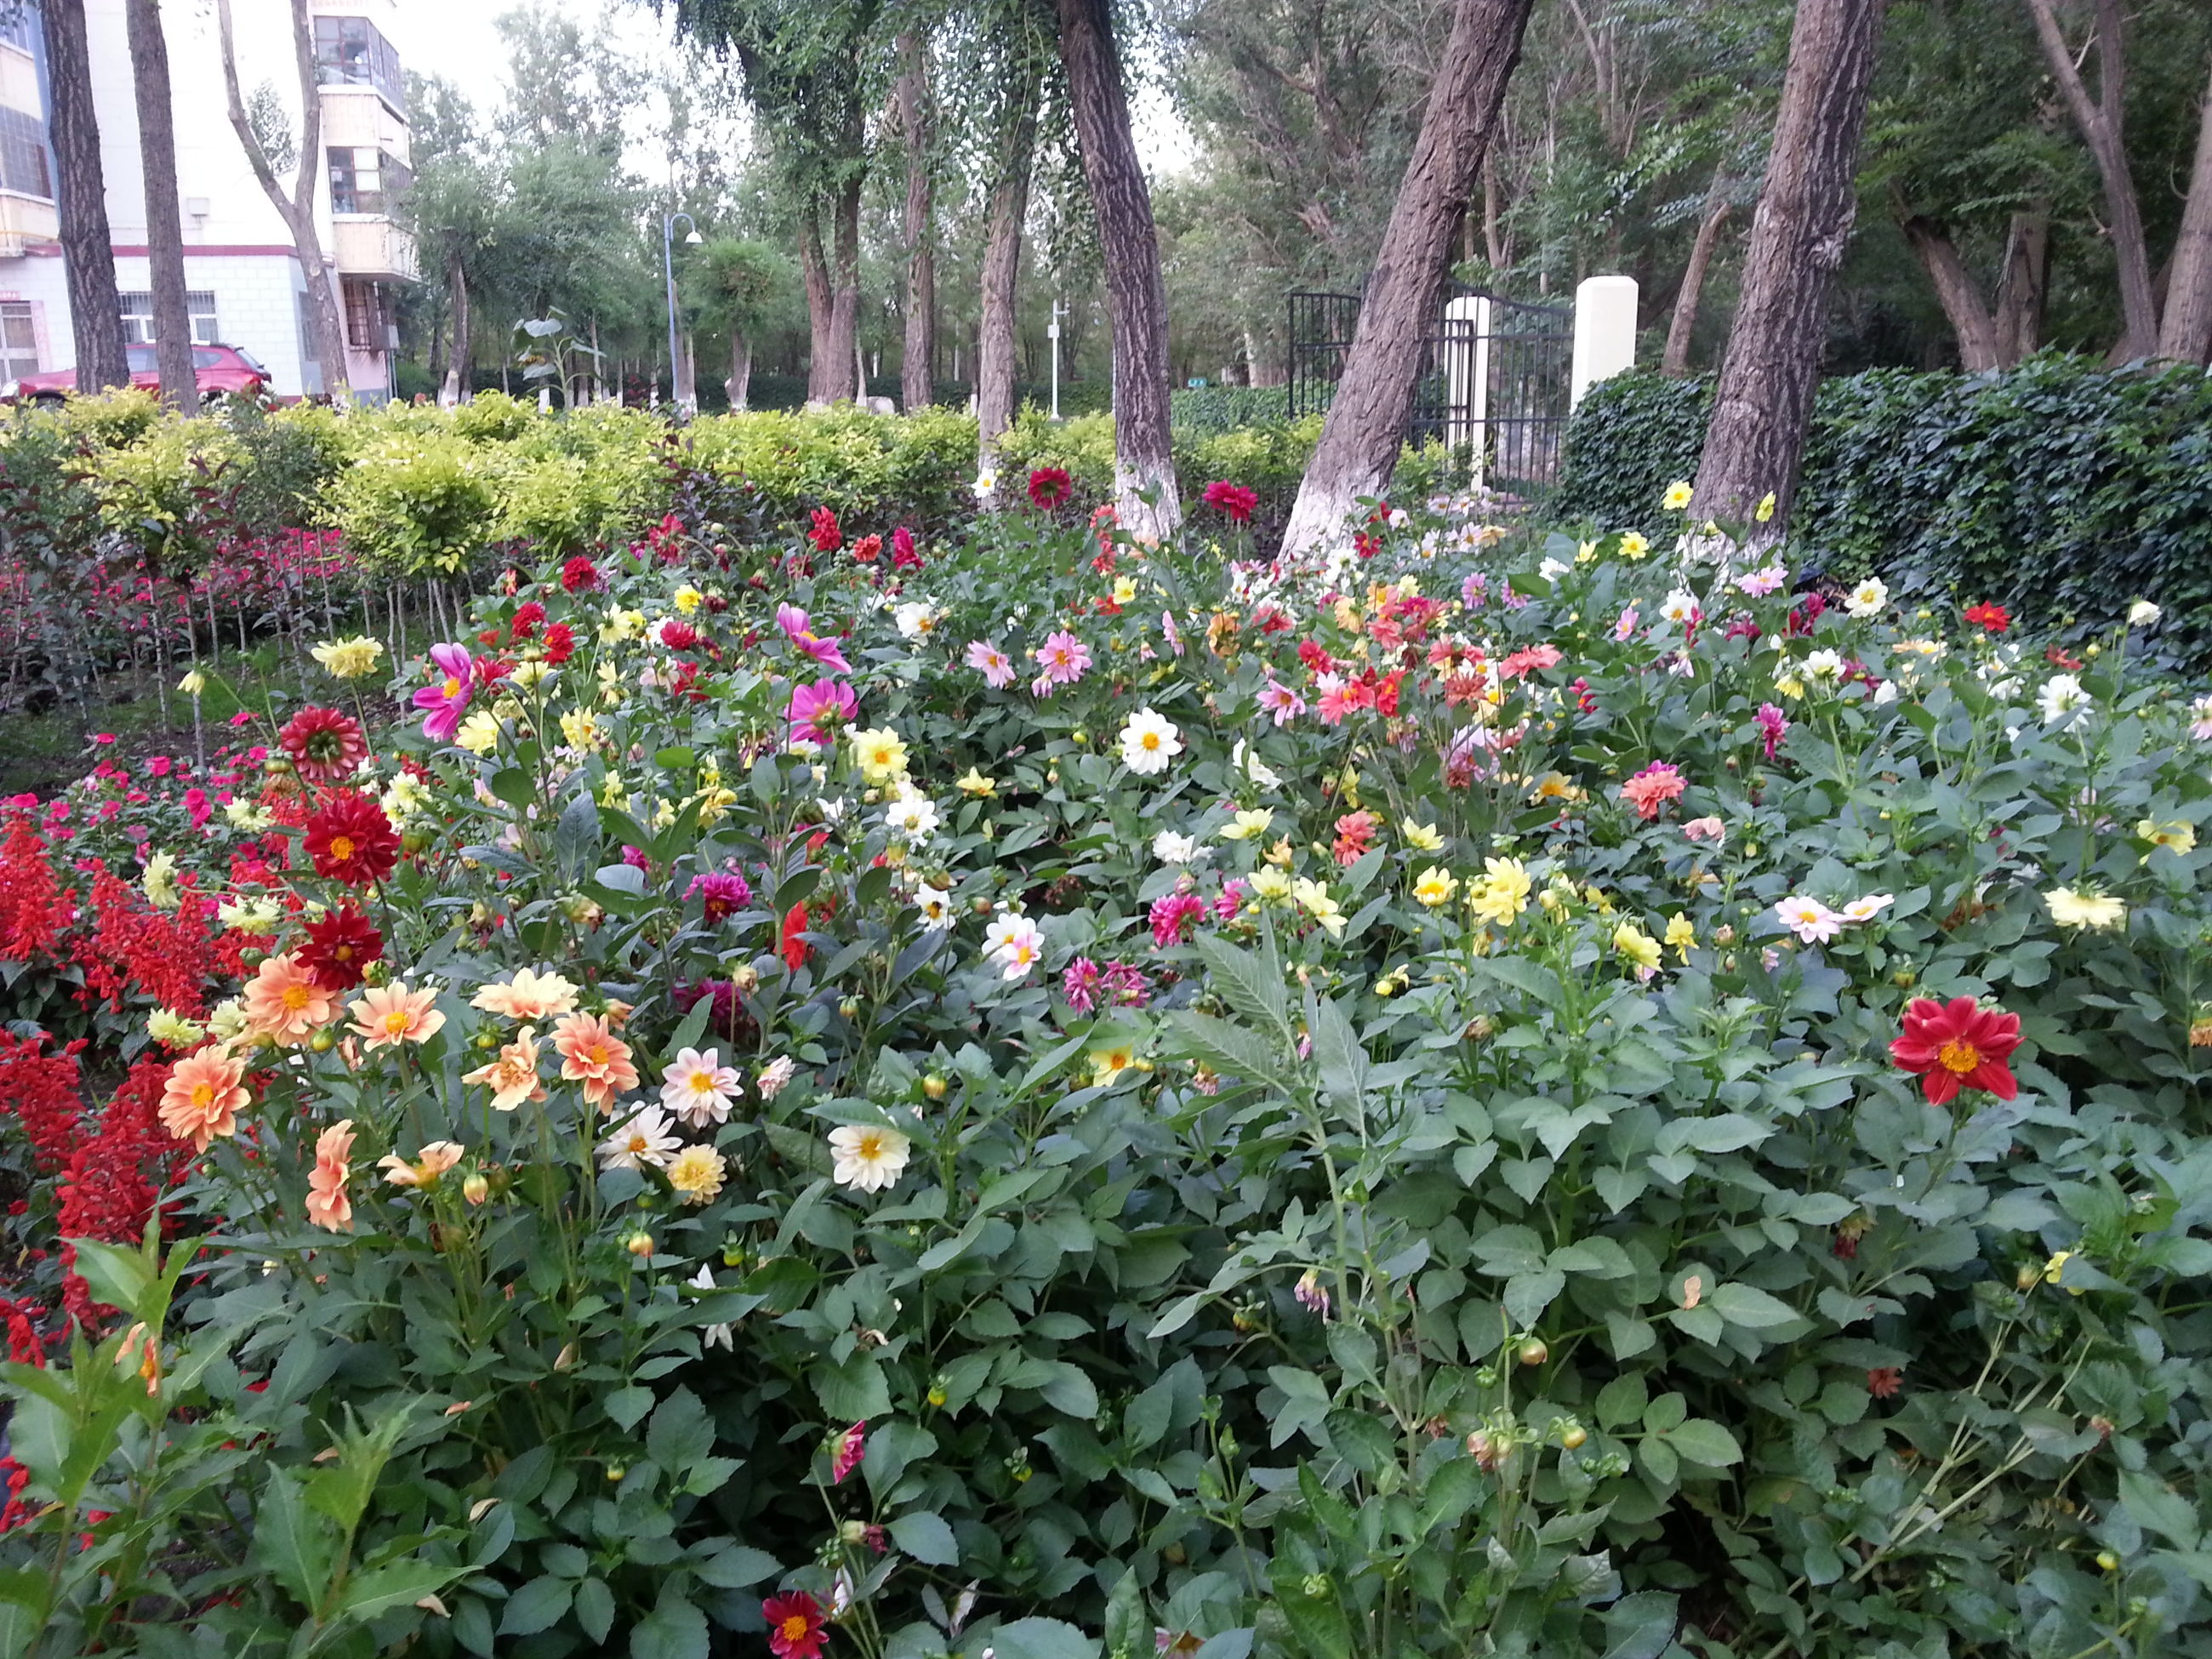 flower, growth, tree, freshness, beauty in nature, plant, nature, green color, leaf, fragility, blooming, park - man made space, in bloom, red, tranquility, blossom, day, lush foliage, growing, formal garden